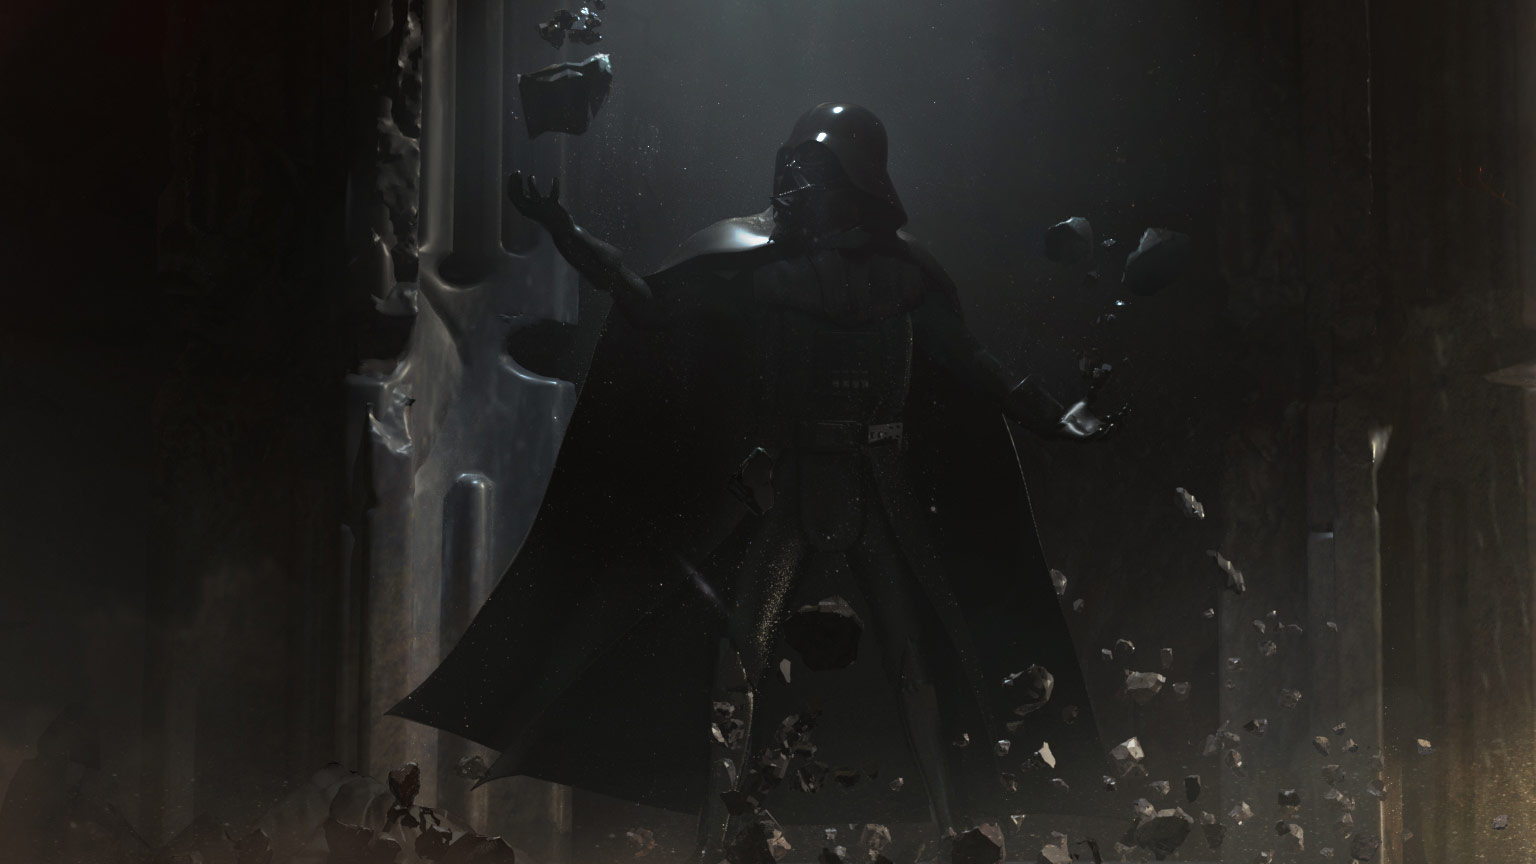 Sdcc 2019 Vader Immortal Episode Ii Concept Art And Details Revealed Starwars Com